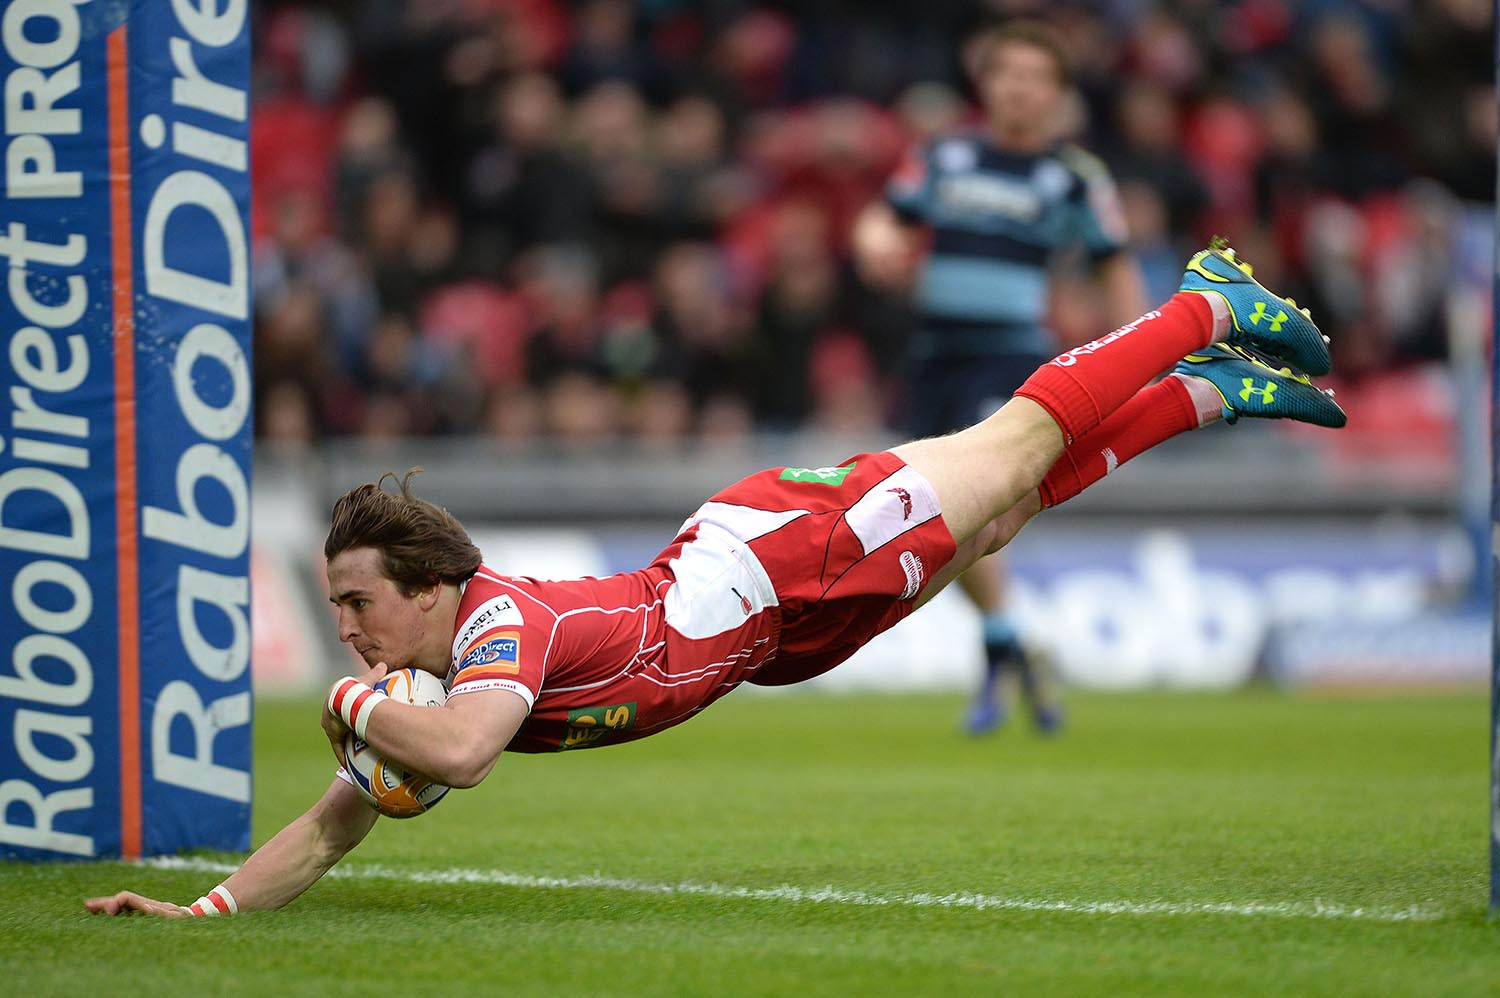 Rhodri Williams of Scarlets scores a try